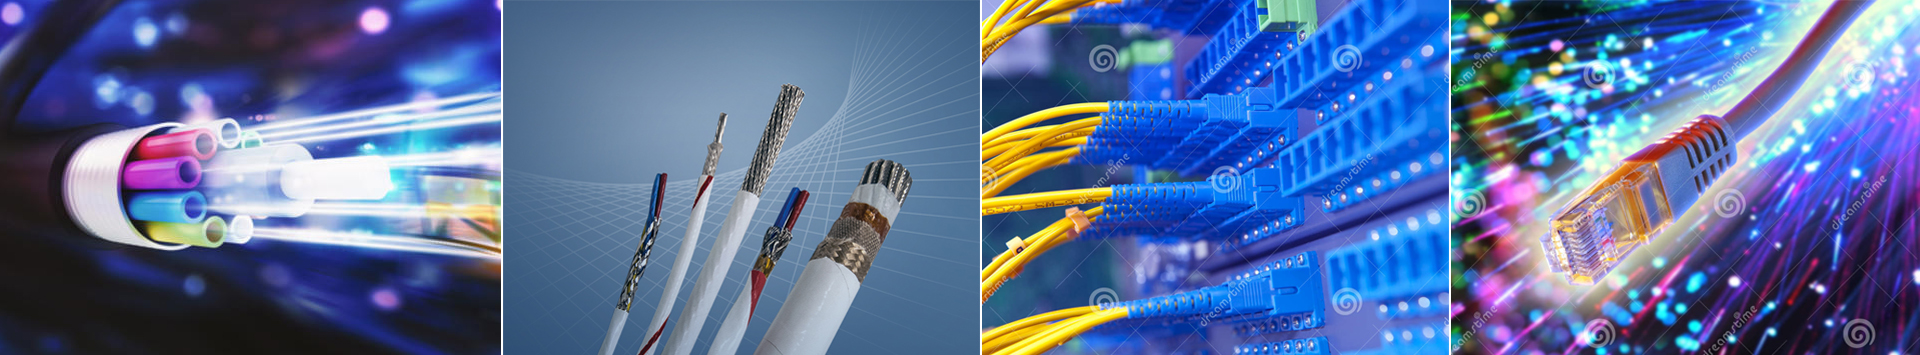 Structural cable